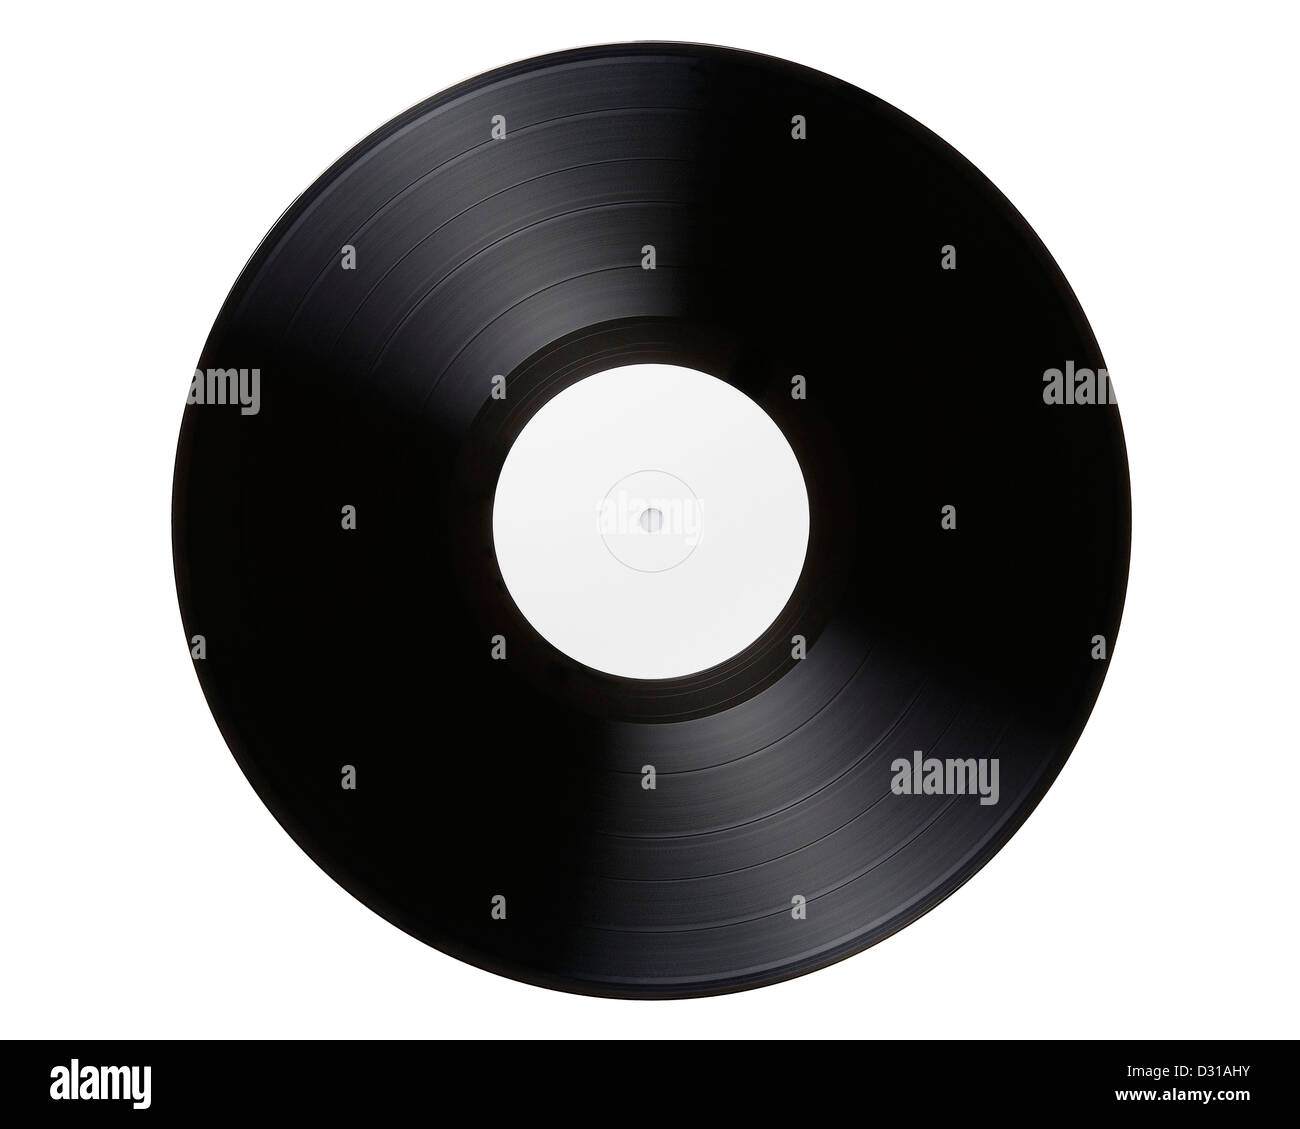 Vinyl Record, Cut Out. - Stock Image